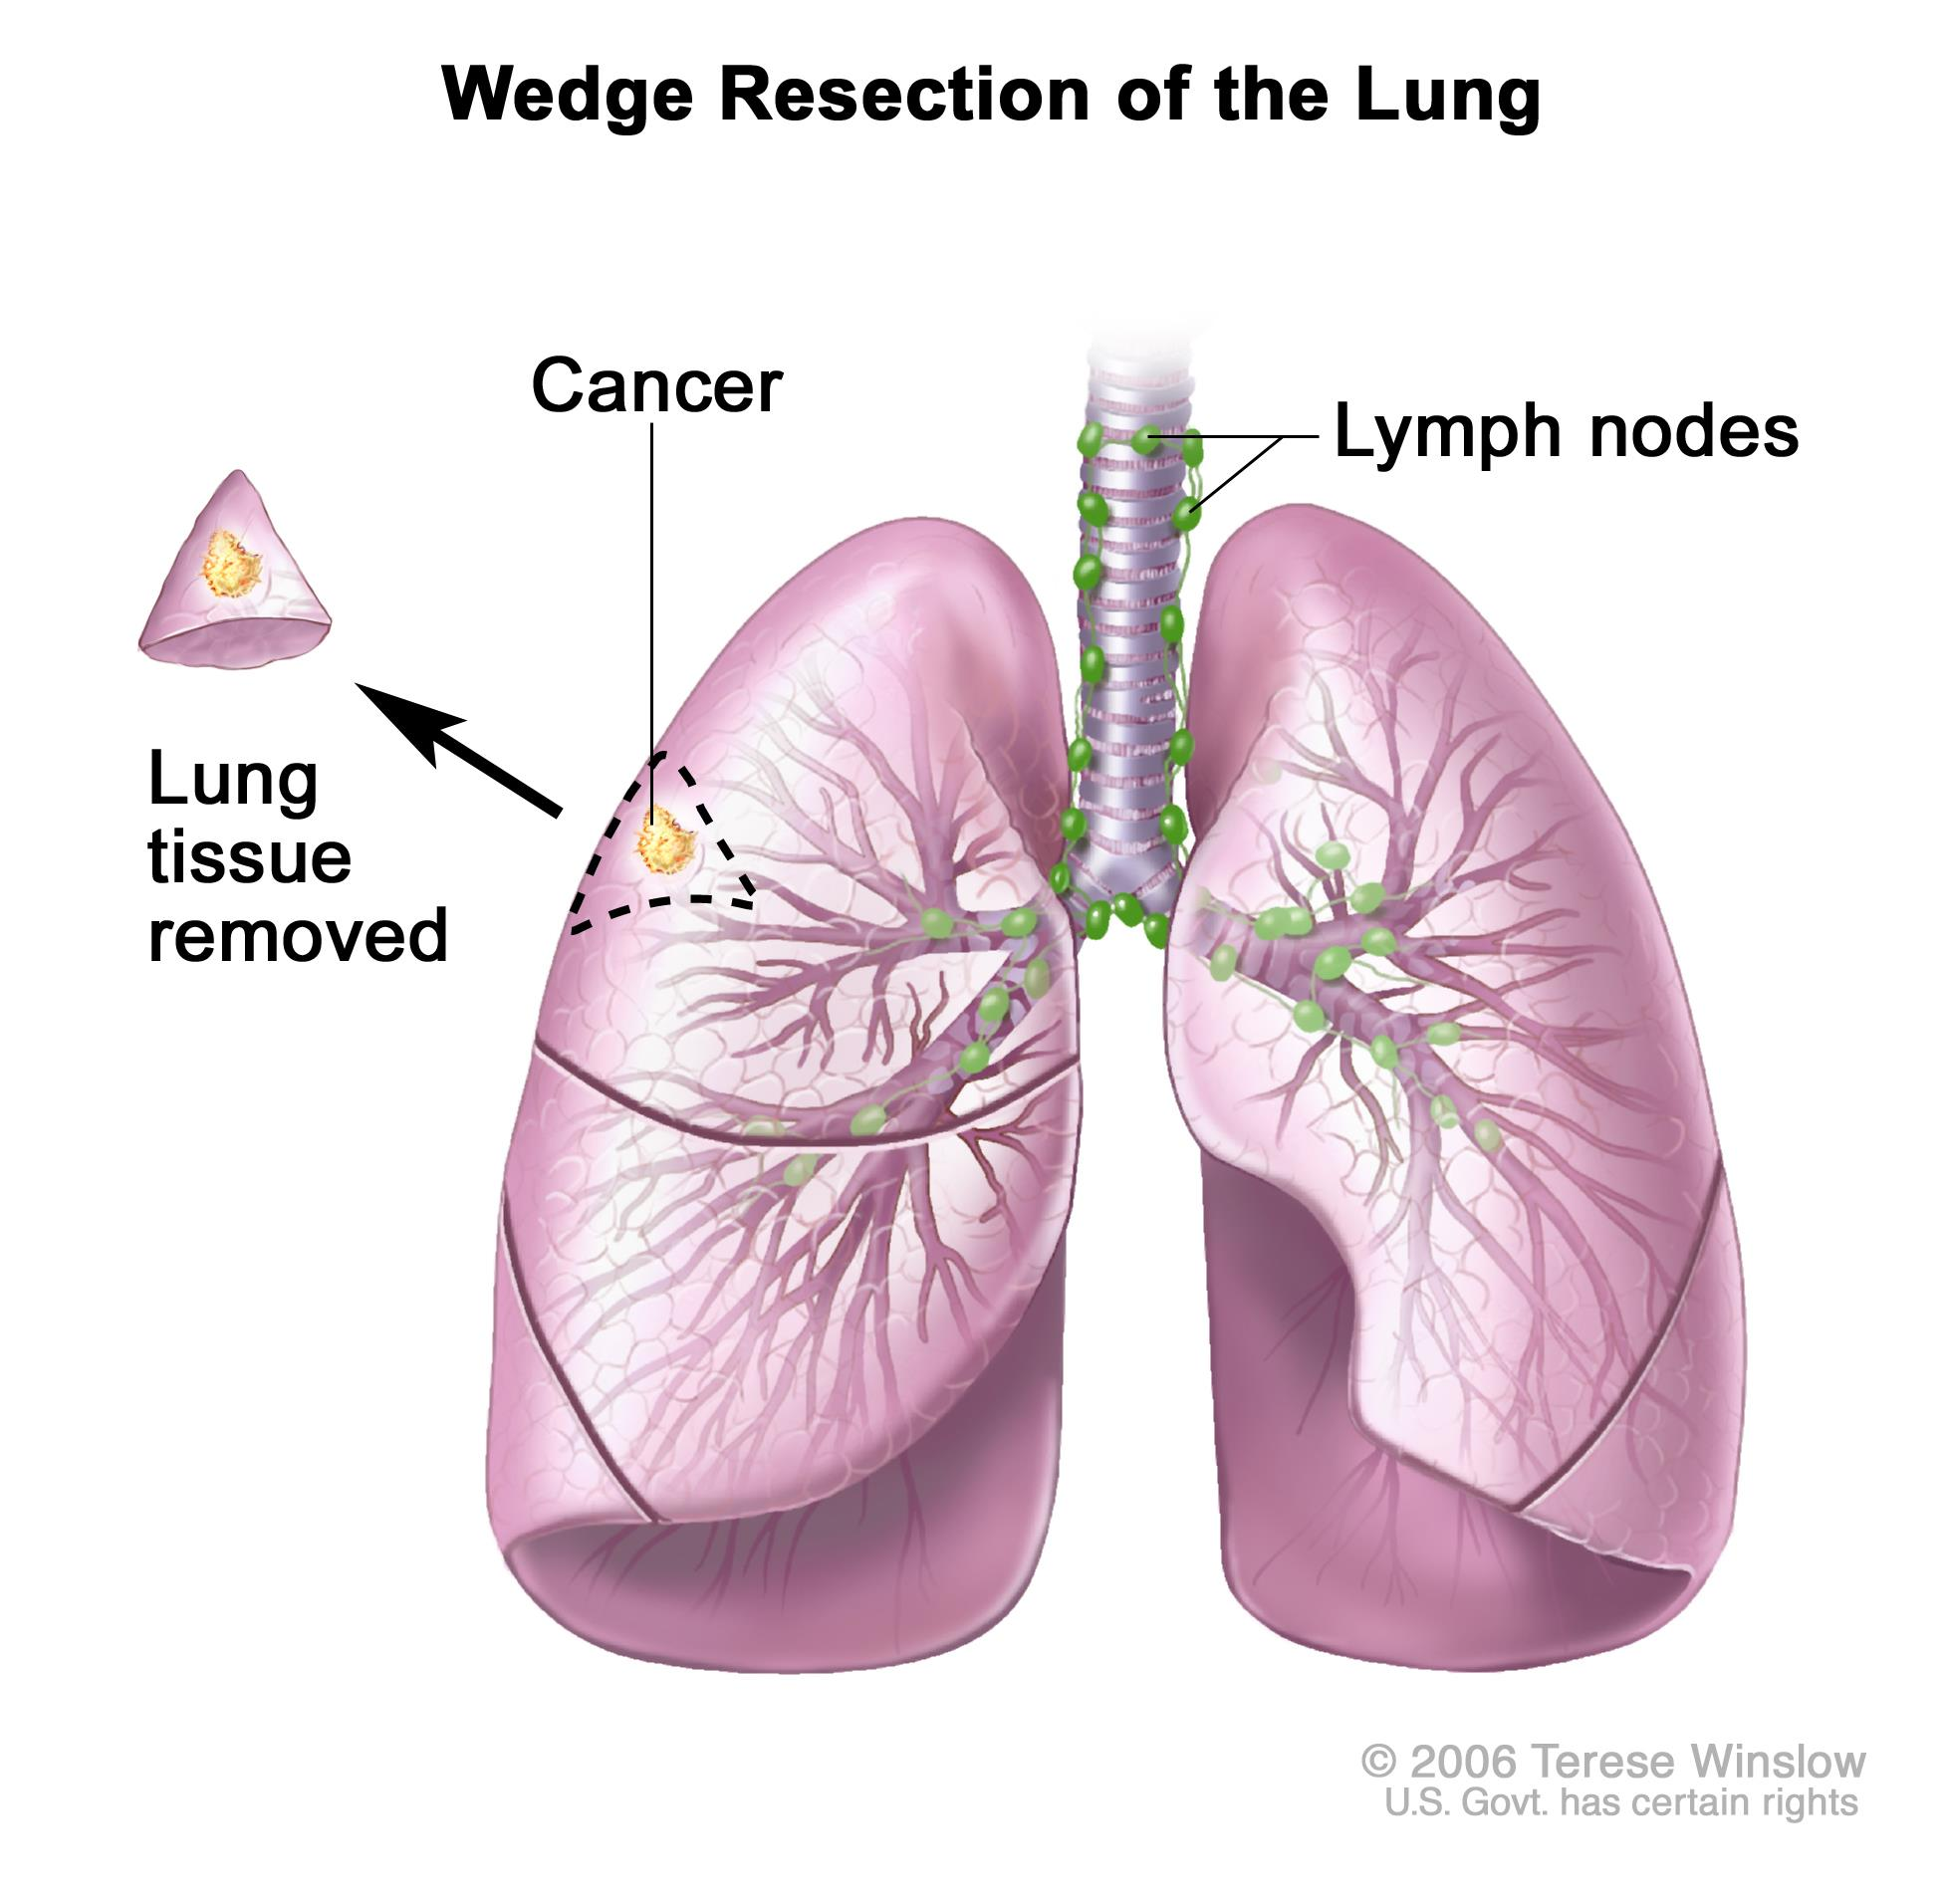 nonsmall cell lung cancer treatment pdq174�patient